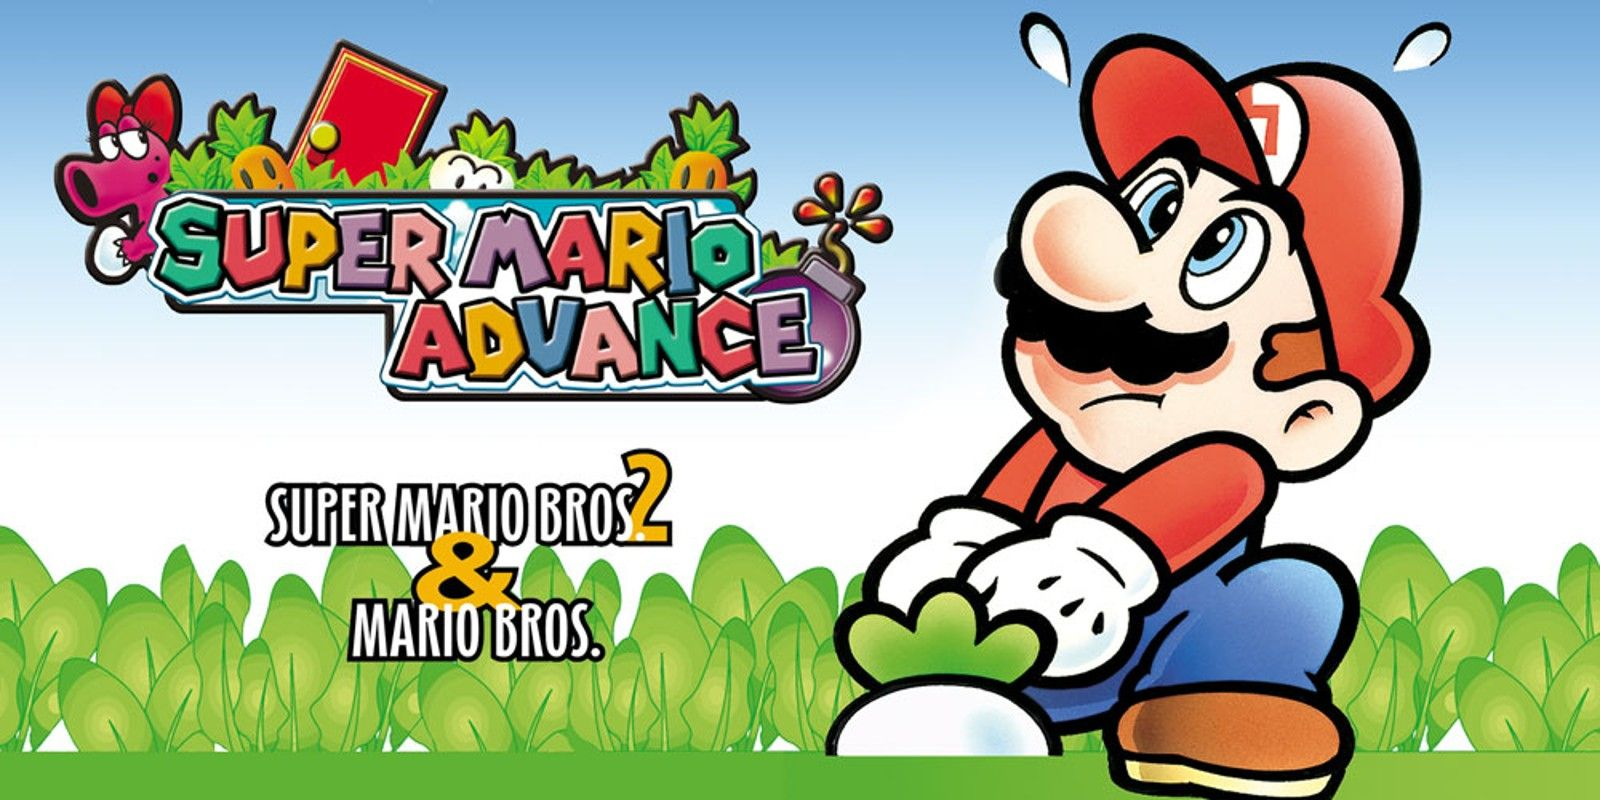 Game Boy Advance The 10 Best Selling Games Of All Time